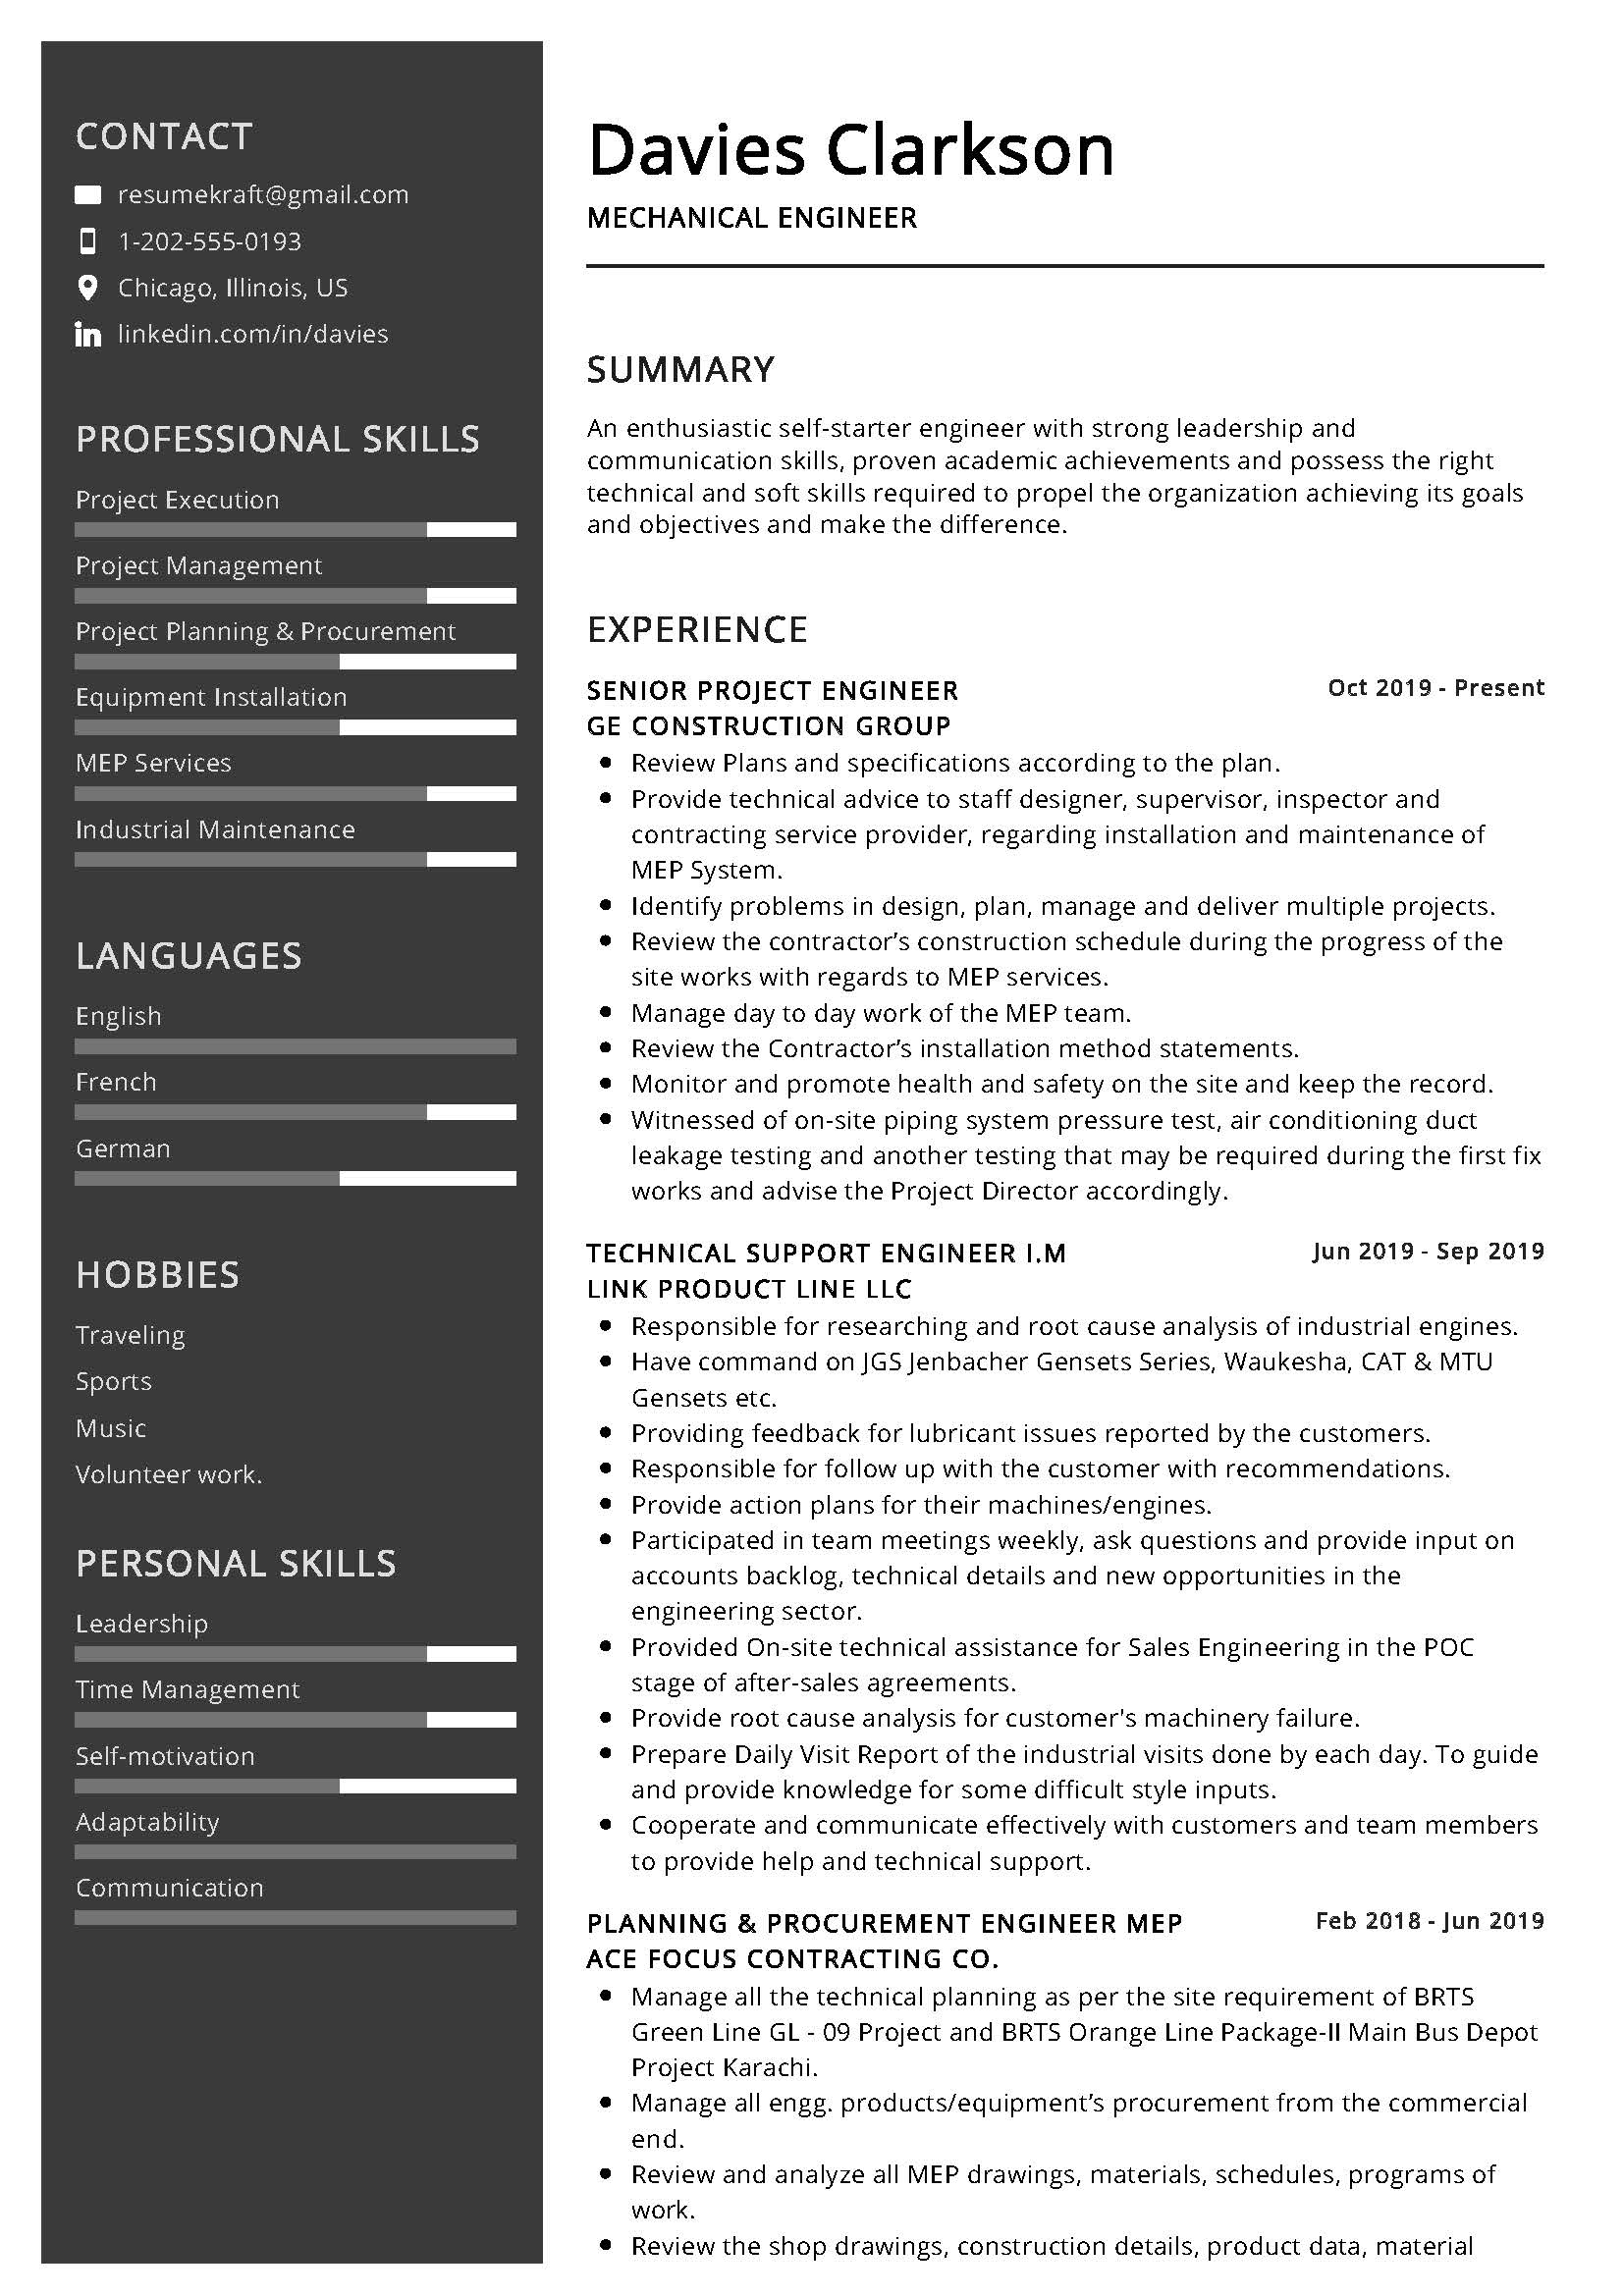 mechanical engineer resume sample  u0026 writing tips 2020